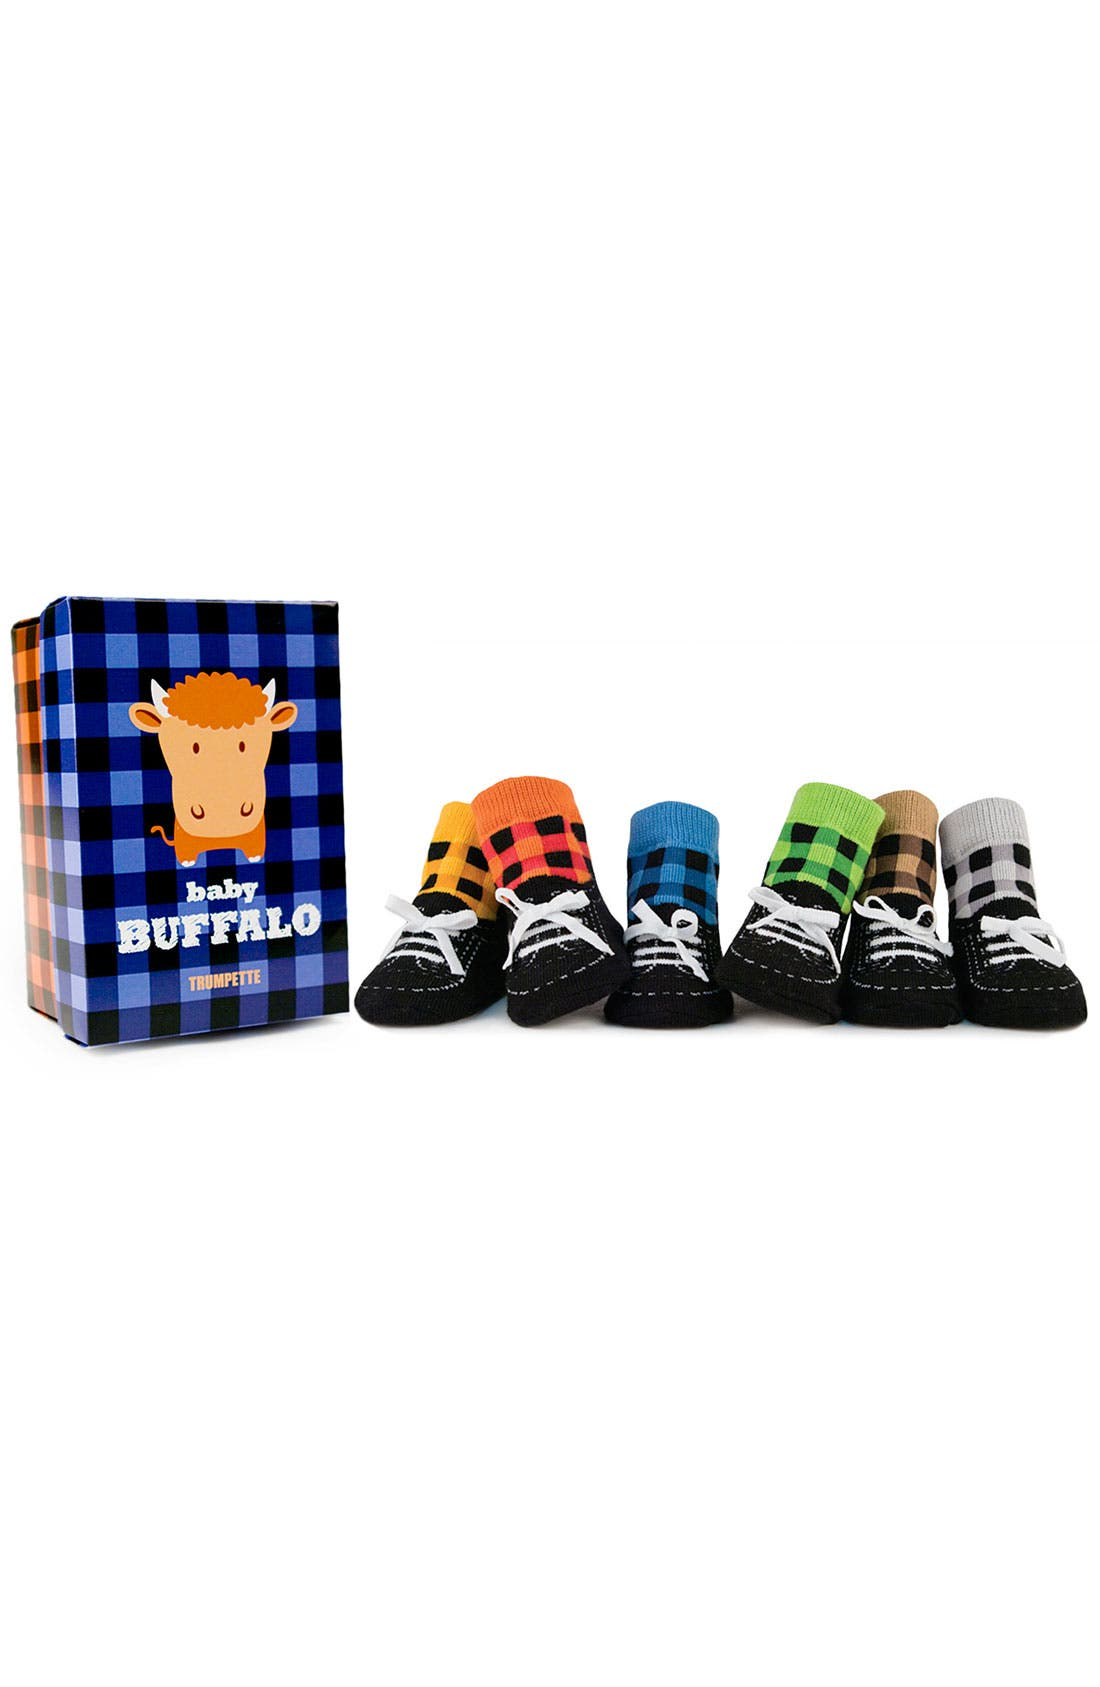 Main Image - Trumpette 'Baby Buffalo' Socks (6-Pack) (Infant)